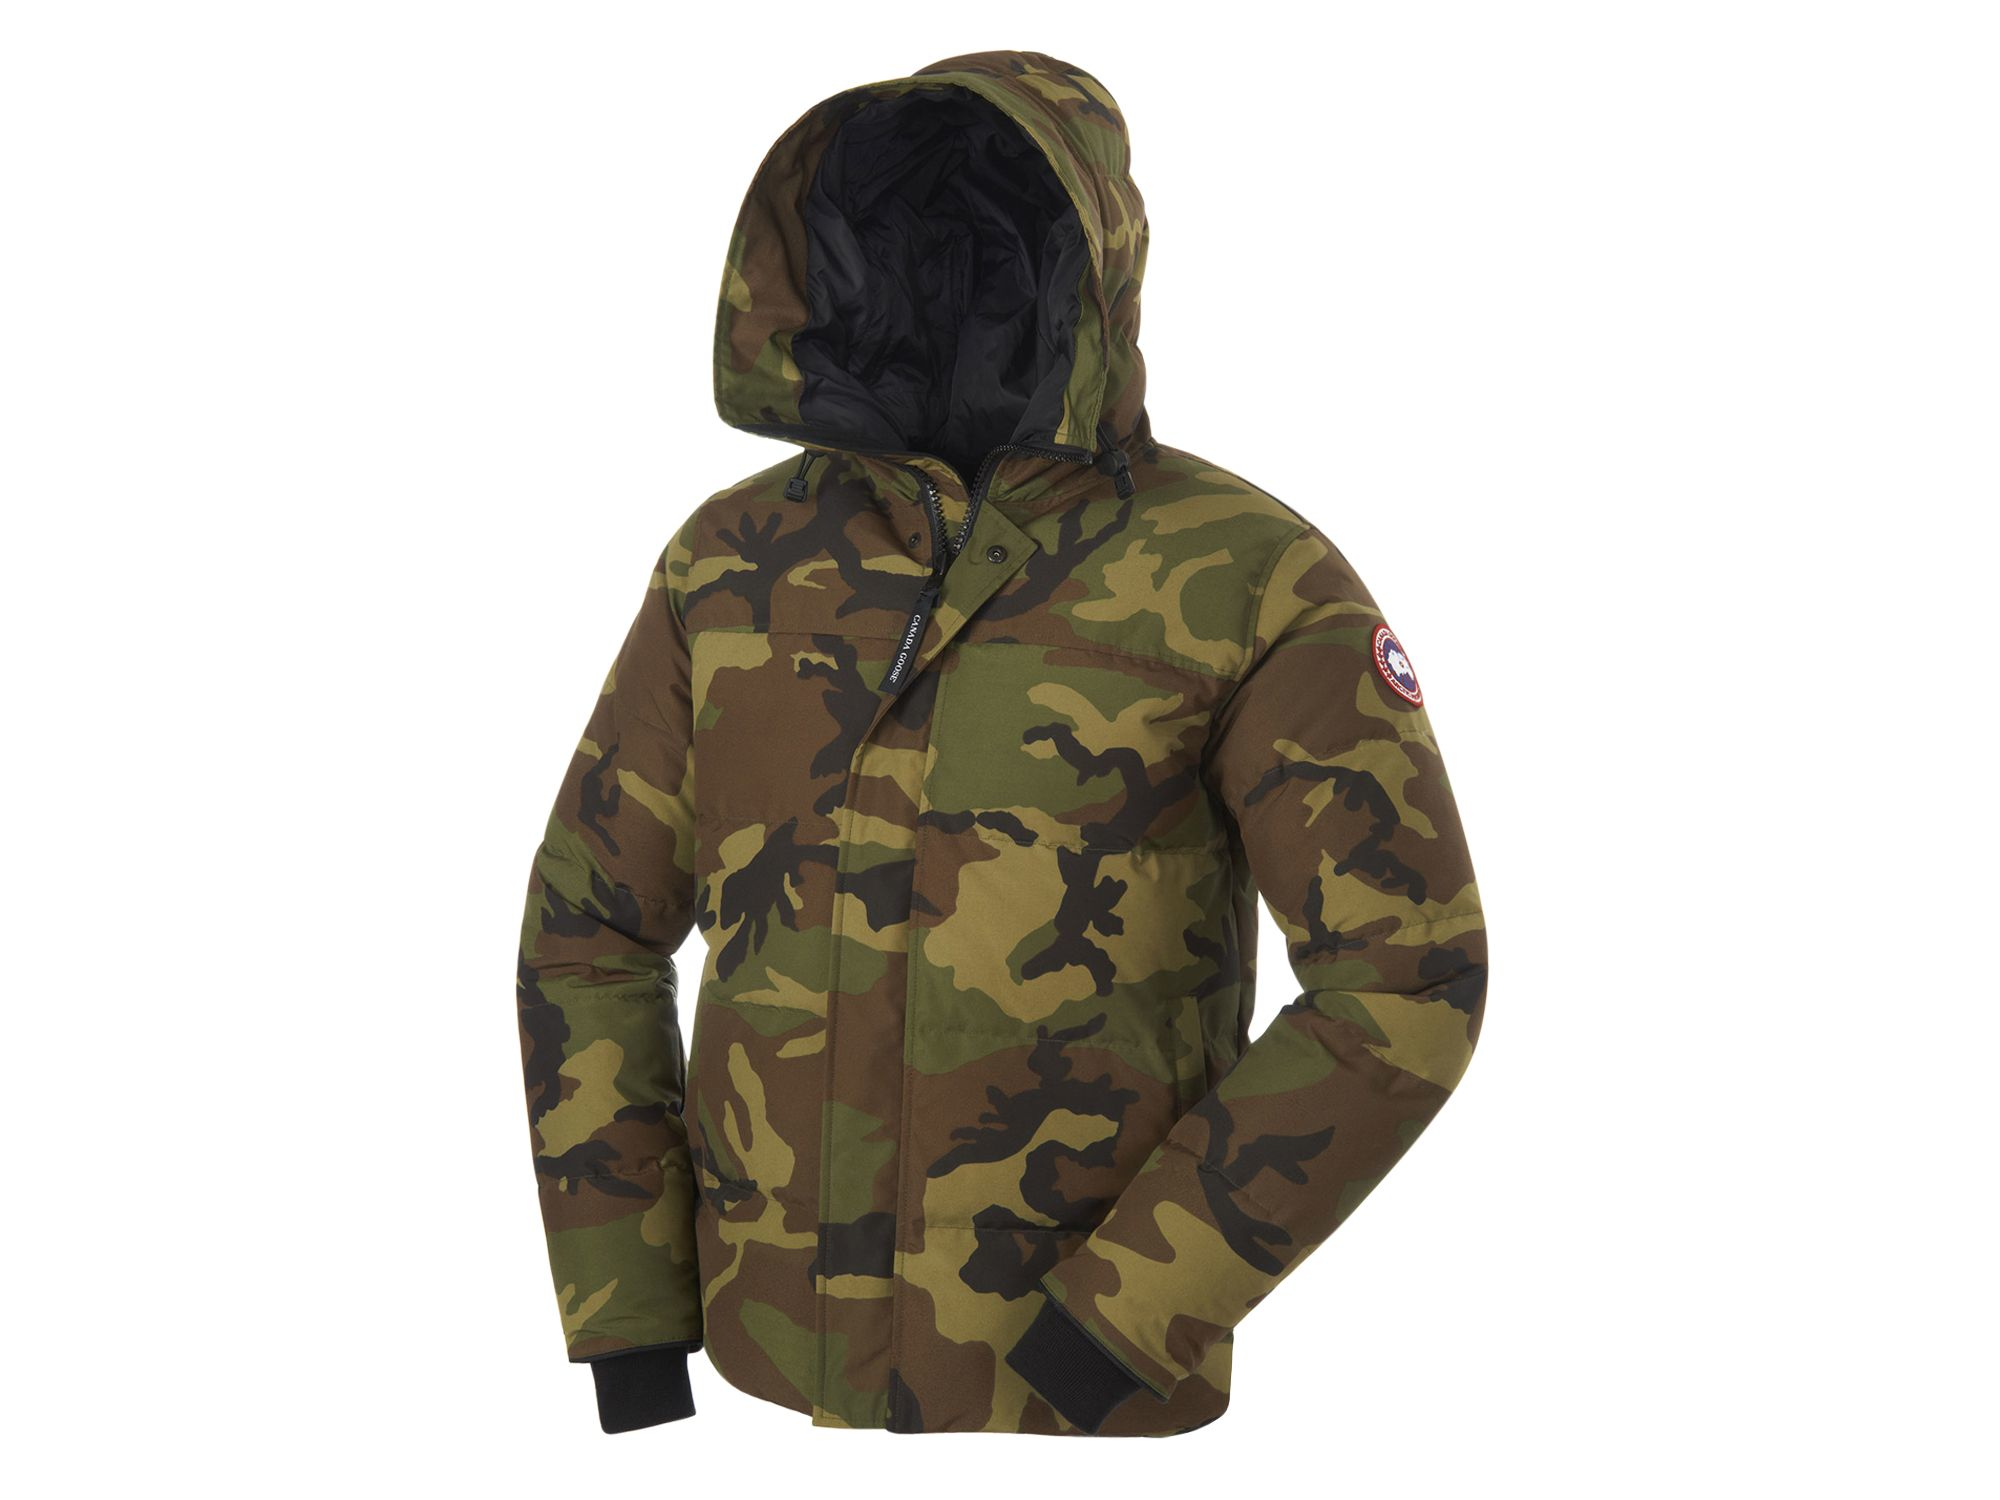 Canada Goose vest online price - Canada goose Macmillan Camouflage-Print Parka Jacket in Green for ...